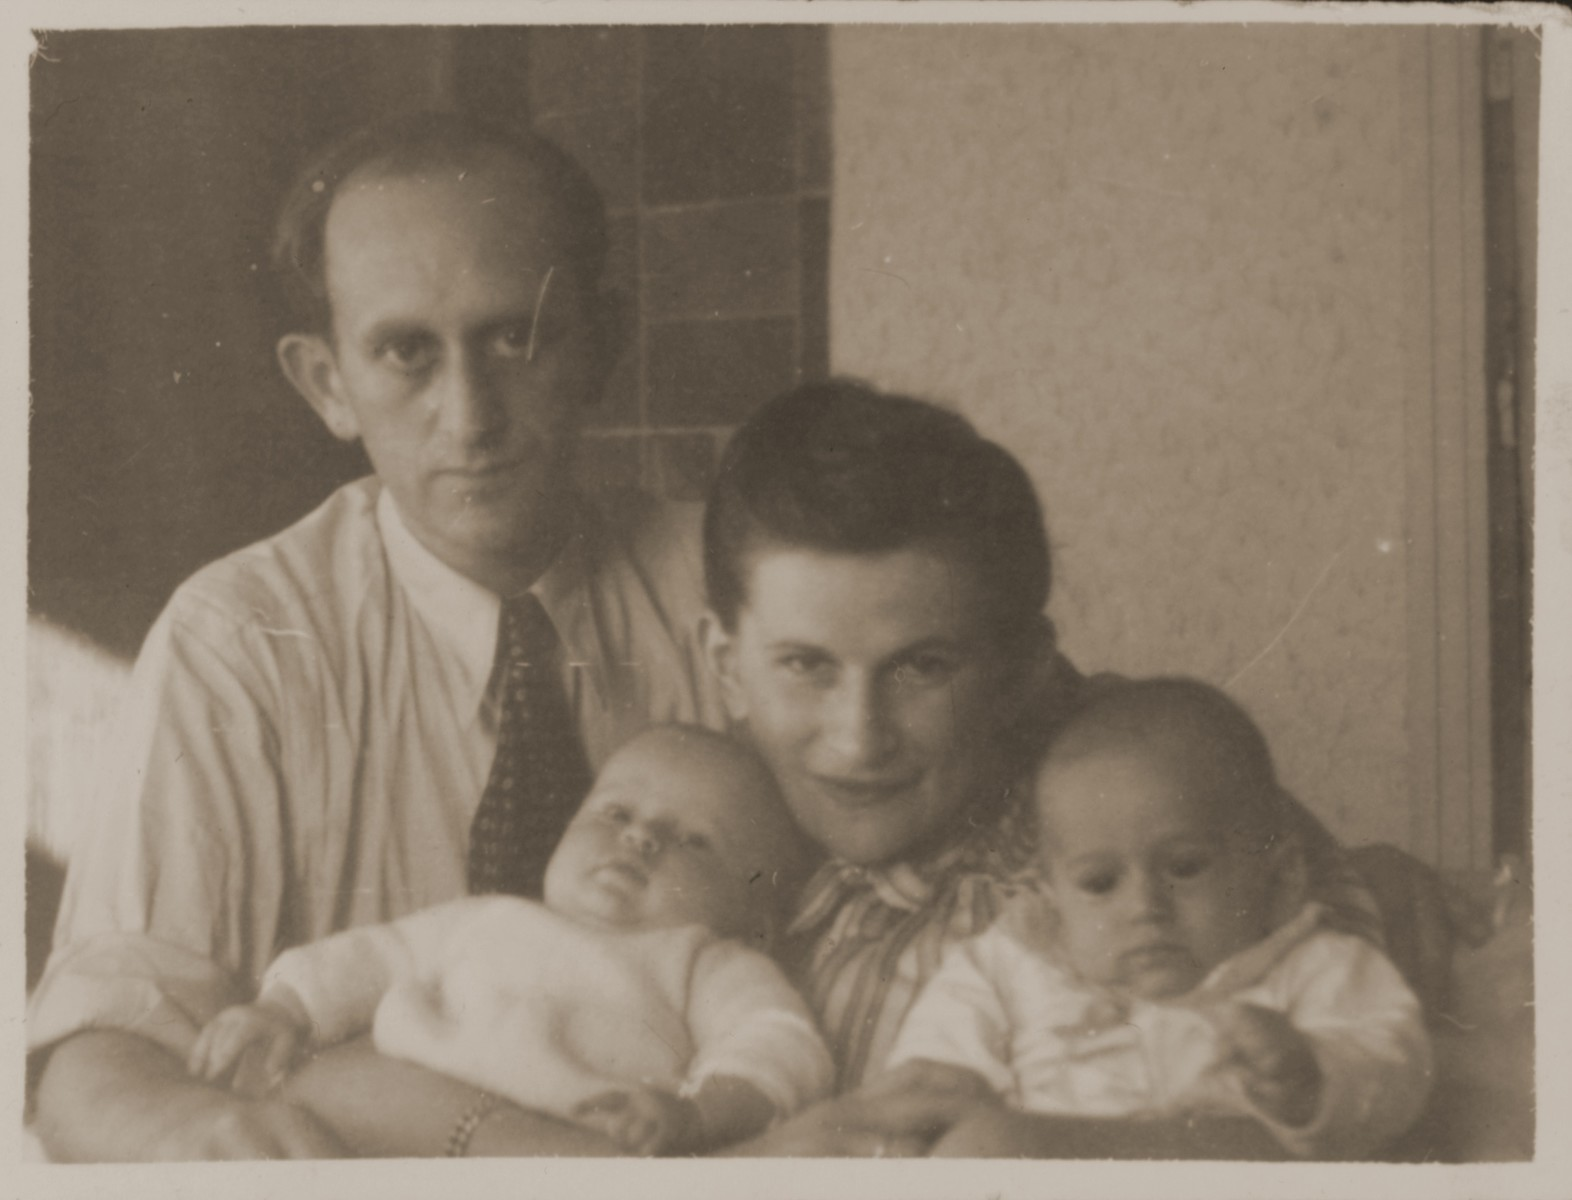 A Jewish DP couple poses with their infant twins.  Pictured are Rachmiel and Eva Zyngier with their children, Yaffa and Yizhak.  Both were from Starachowice and were survivors of the Bergen-Belsen concentration camp.